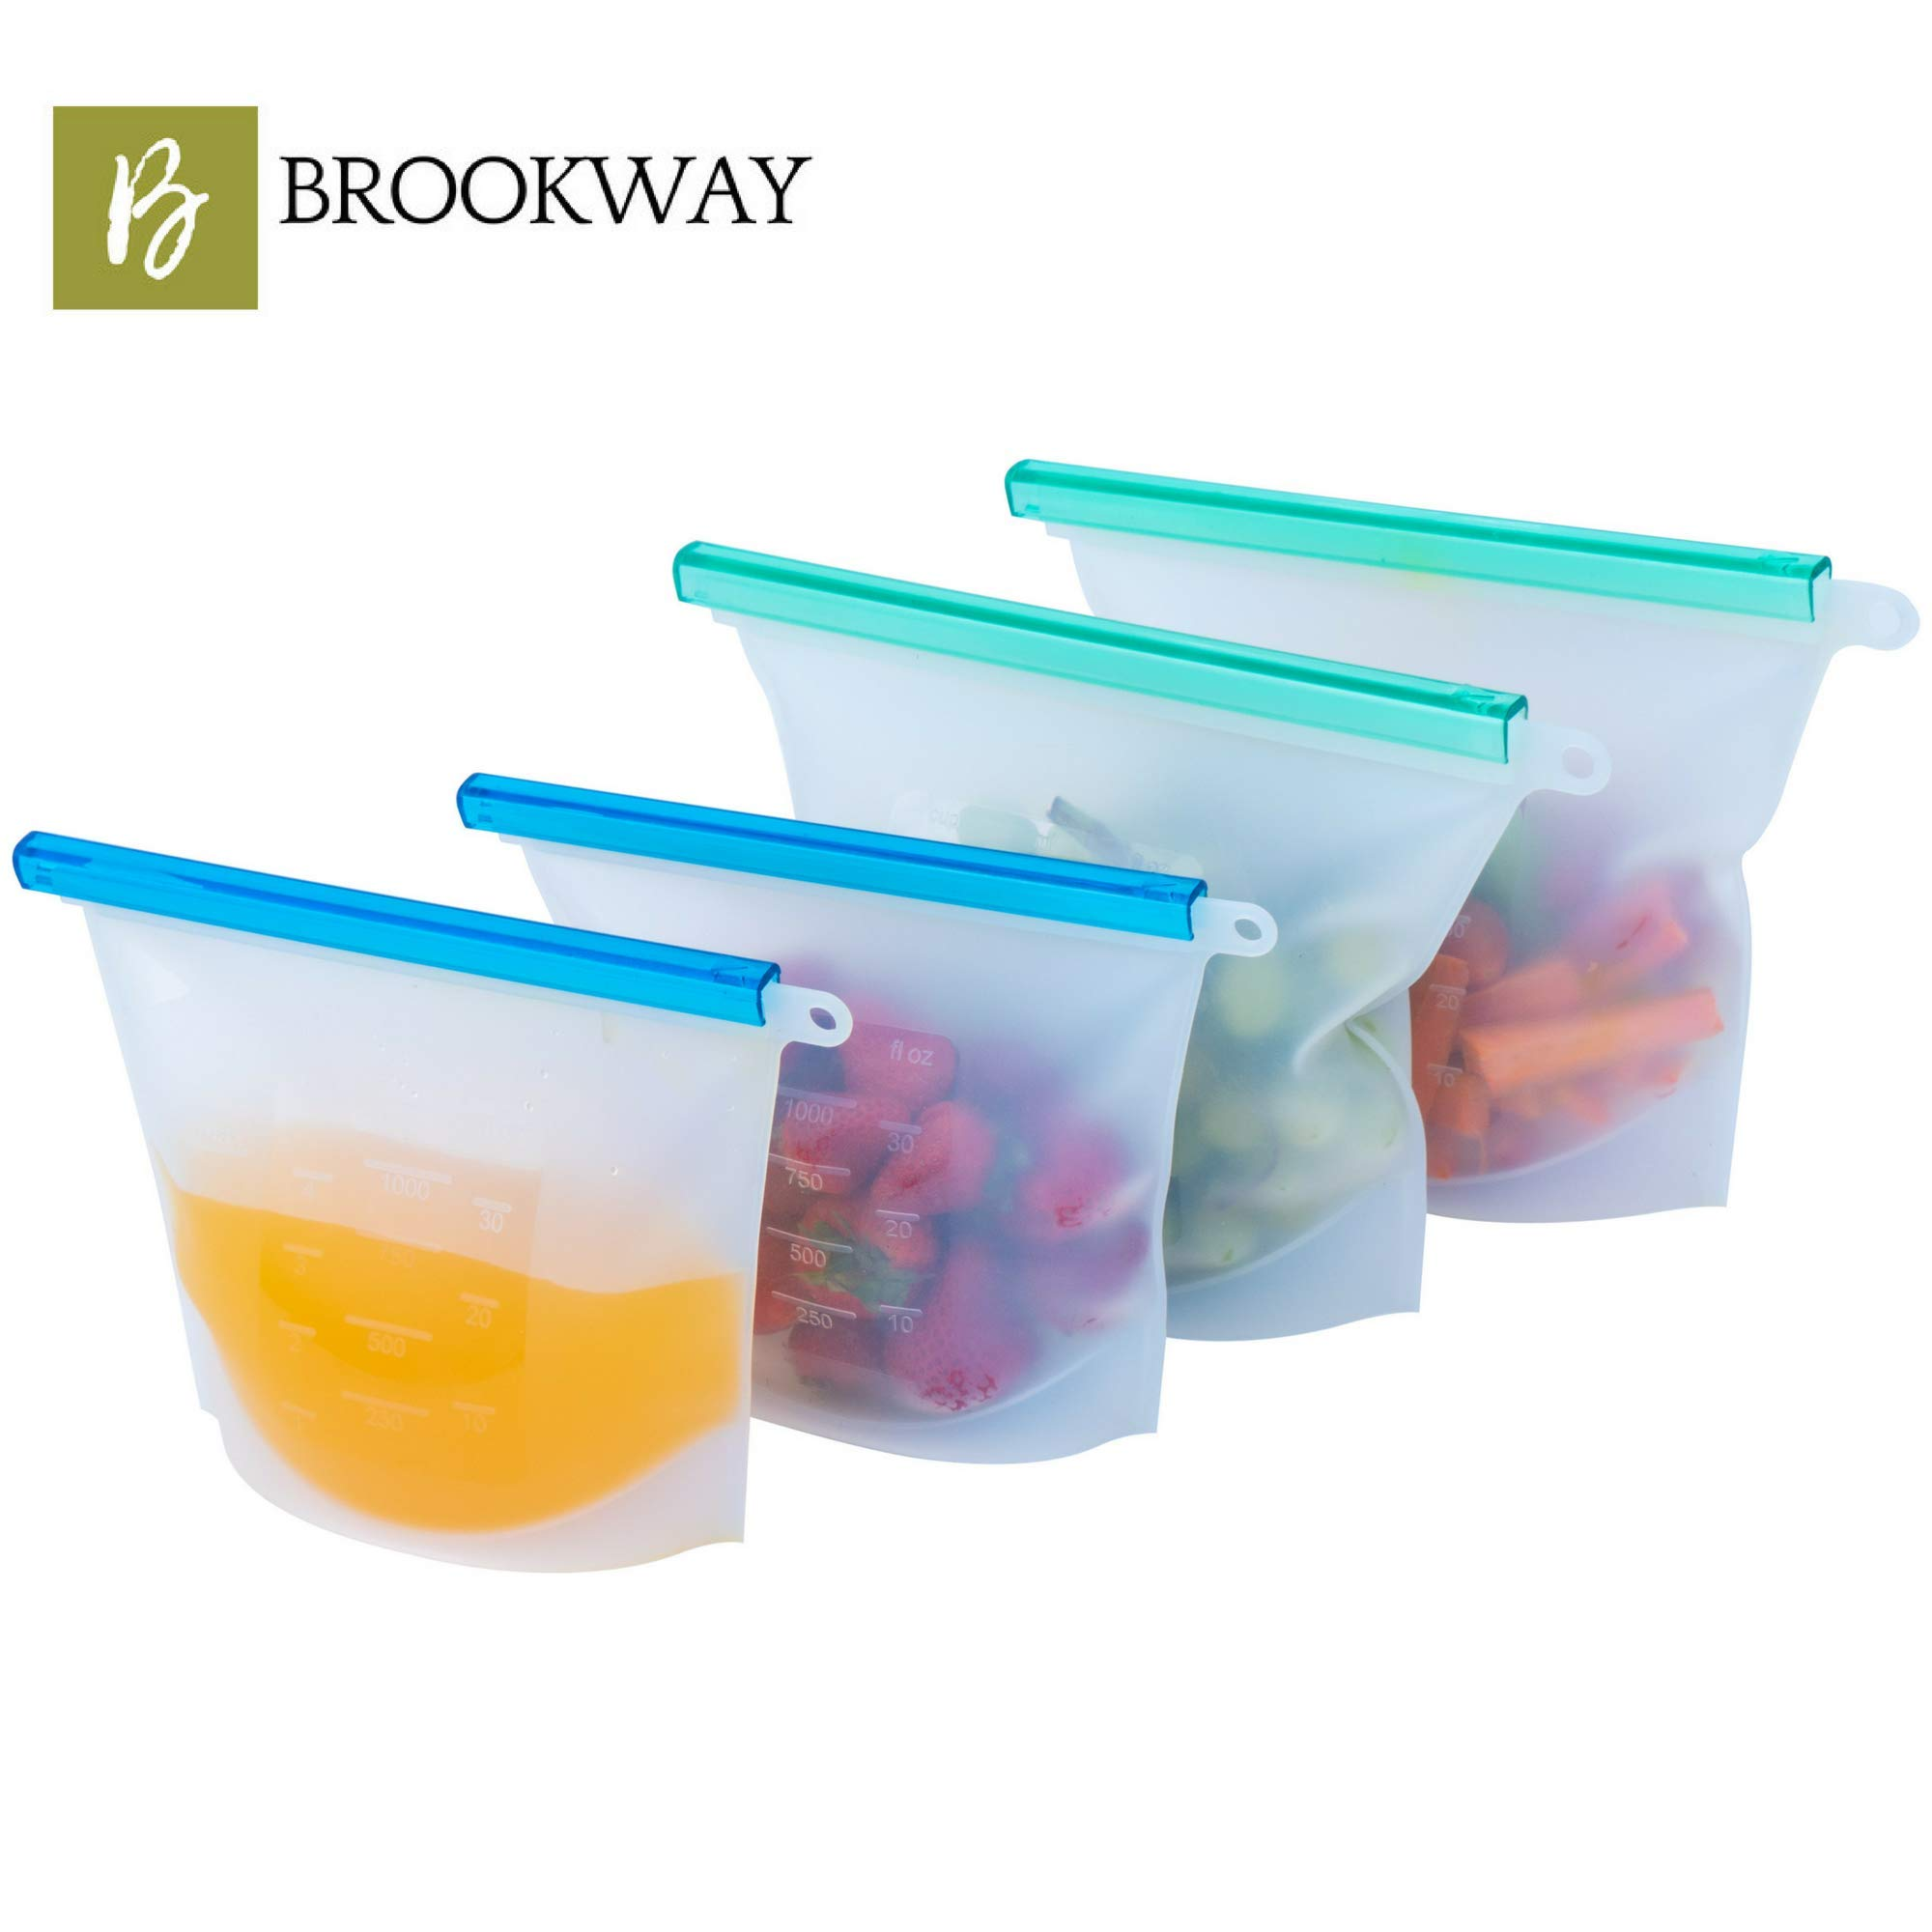 BROOKWAY Reusable Silicone Food Storage Bags | (4-Pack) 2 Large & 2 Small | Airtight Ziploc Seal Bags Leakproof | Meal Prep, Snack Bags, Sandwich, Leftovers, Travel, Sous Vide | Microwave, Dishwasher